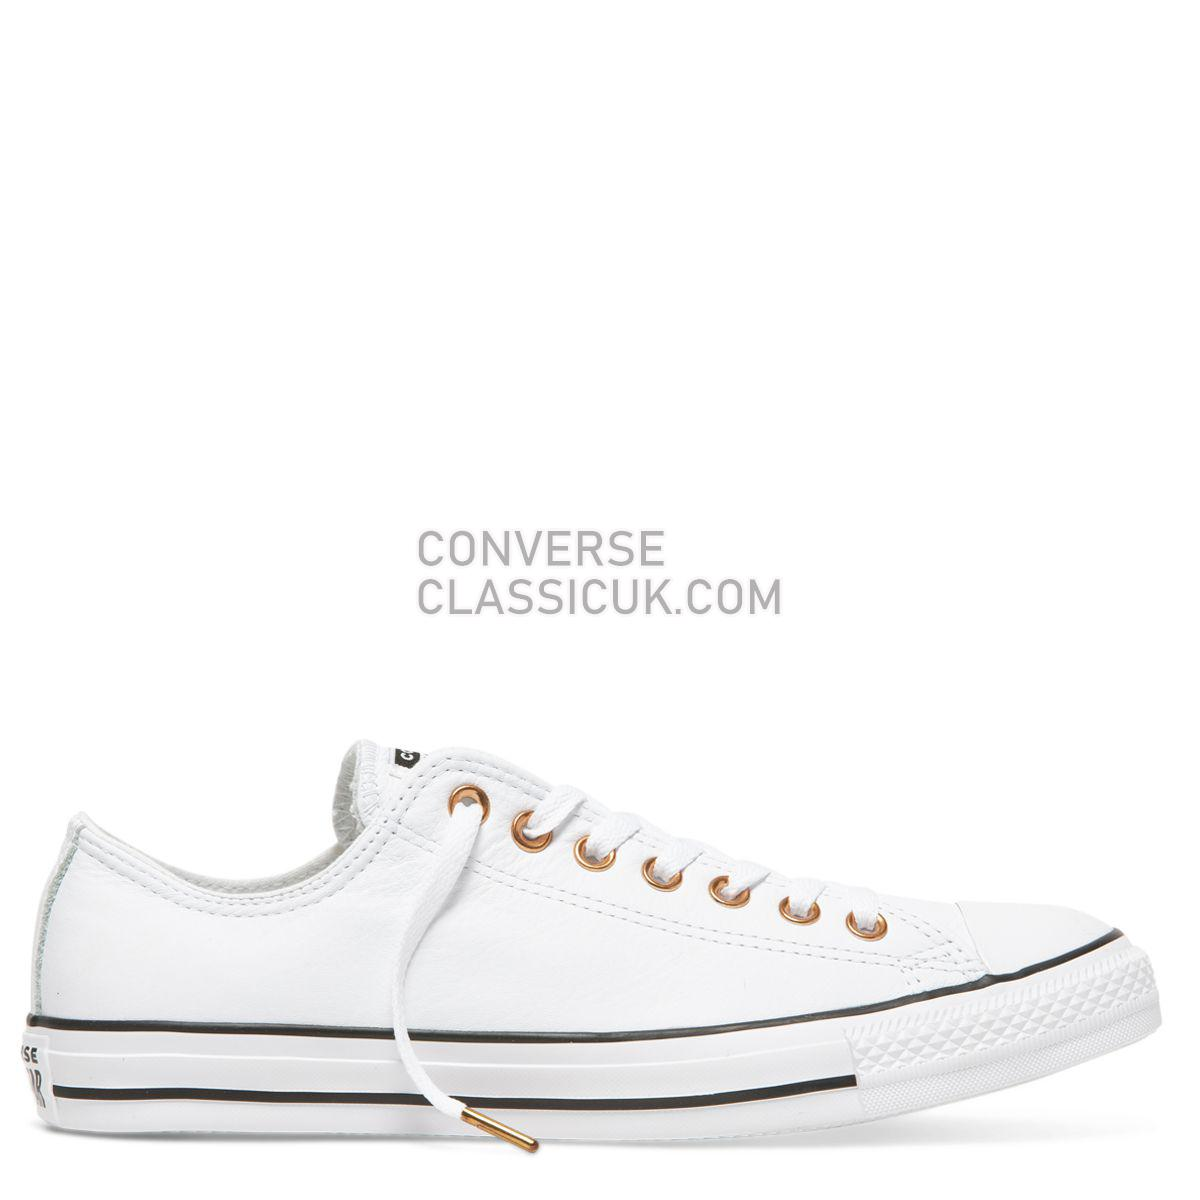 Converse Chuck Taylor All Star Leather Low Top White Mens Womens Unisex 161262 White/White/Black Shoes